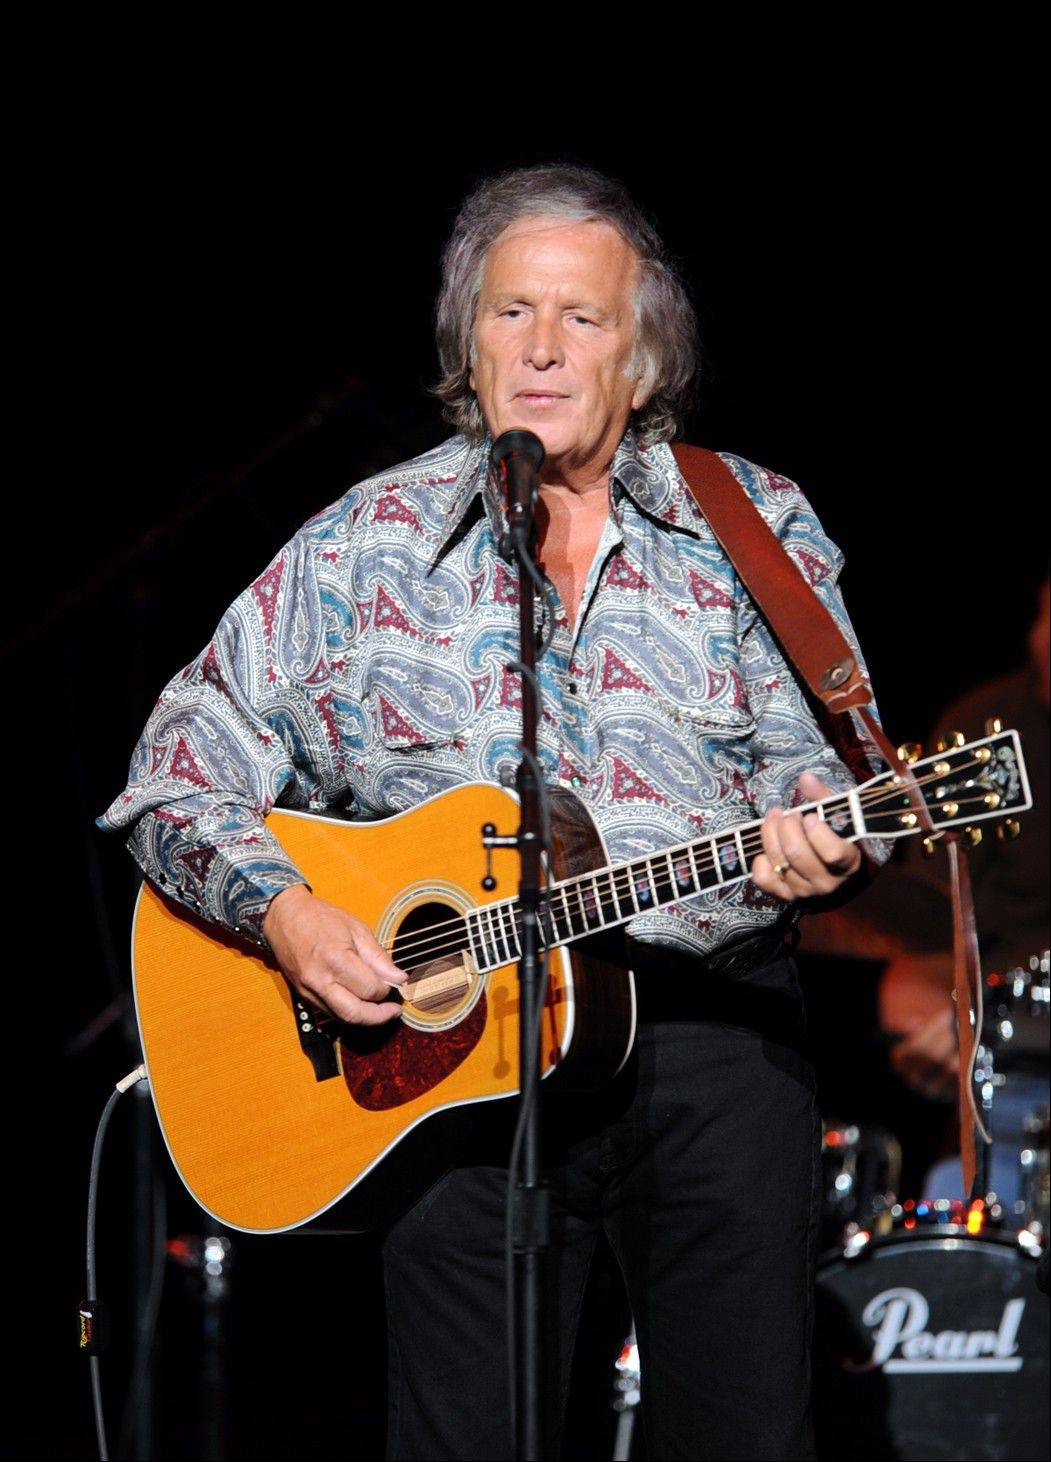 Singer Don McLean has been fined $400 for driving his Chrysler too fast through a school zone in Maine and has paid the levy.